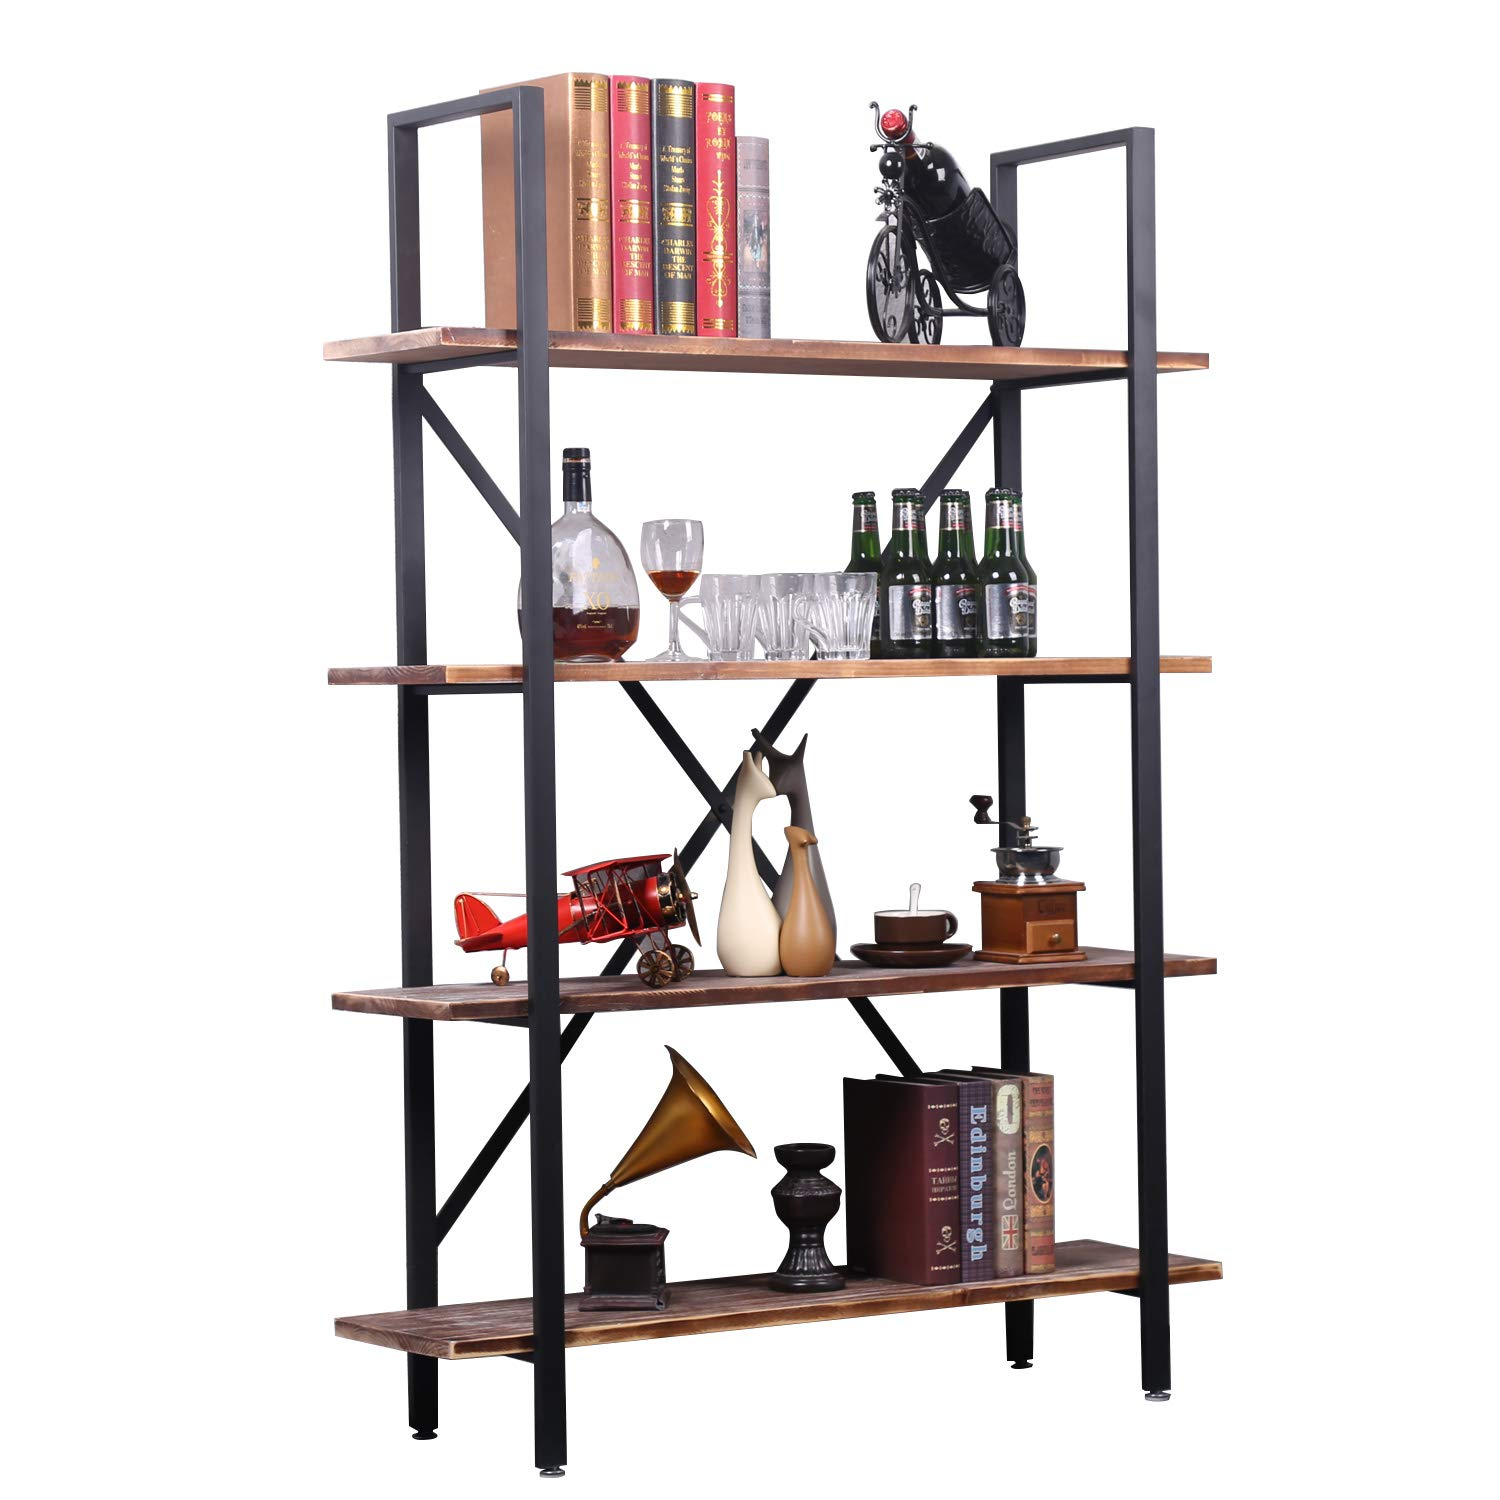 4-Shelf Modern Industrial Style Bookcase, Vintage Solid Wood and Black Metal Frame, Rustic Book Shelf, Storage Display Shelves, Open Etagere Bookcase,Free Standing Storage Shelf Units